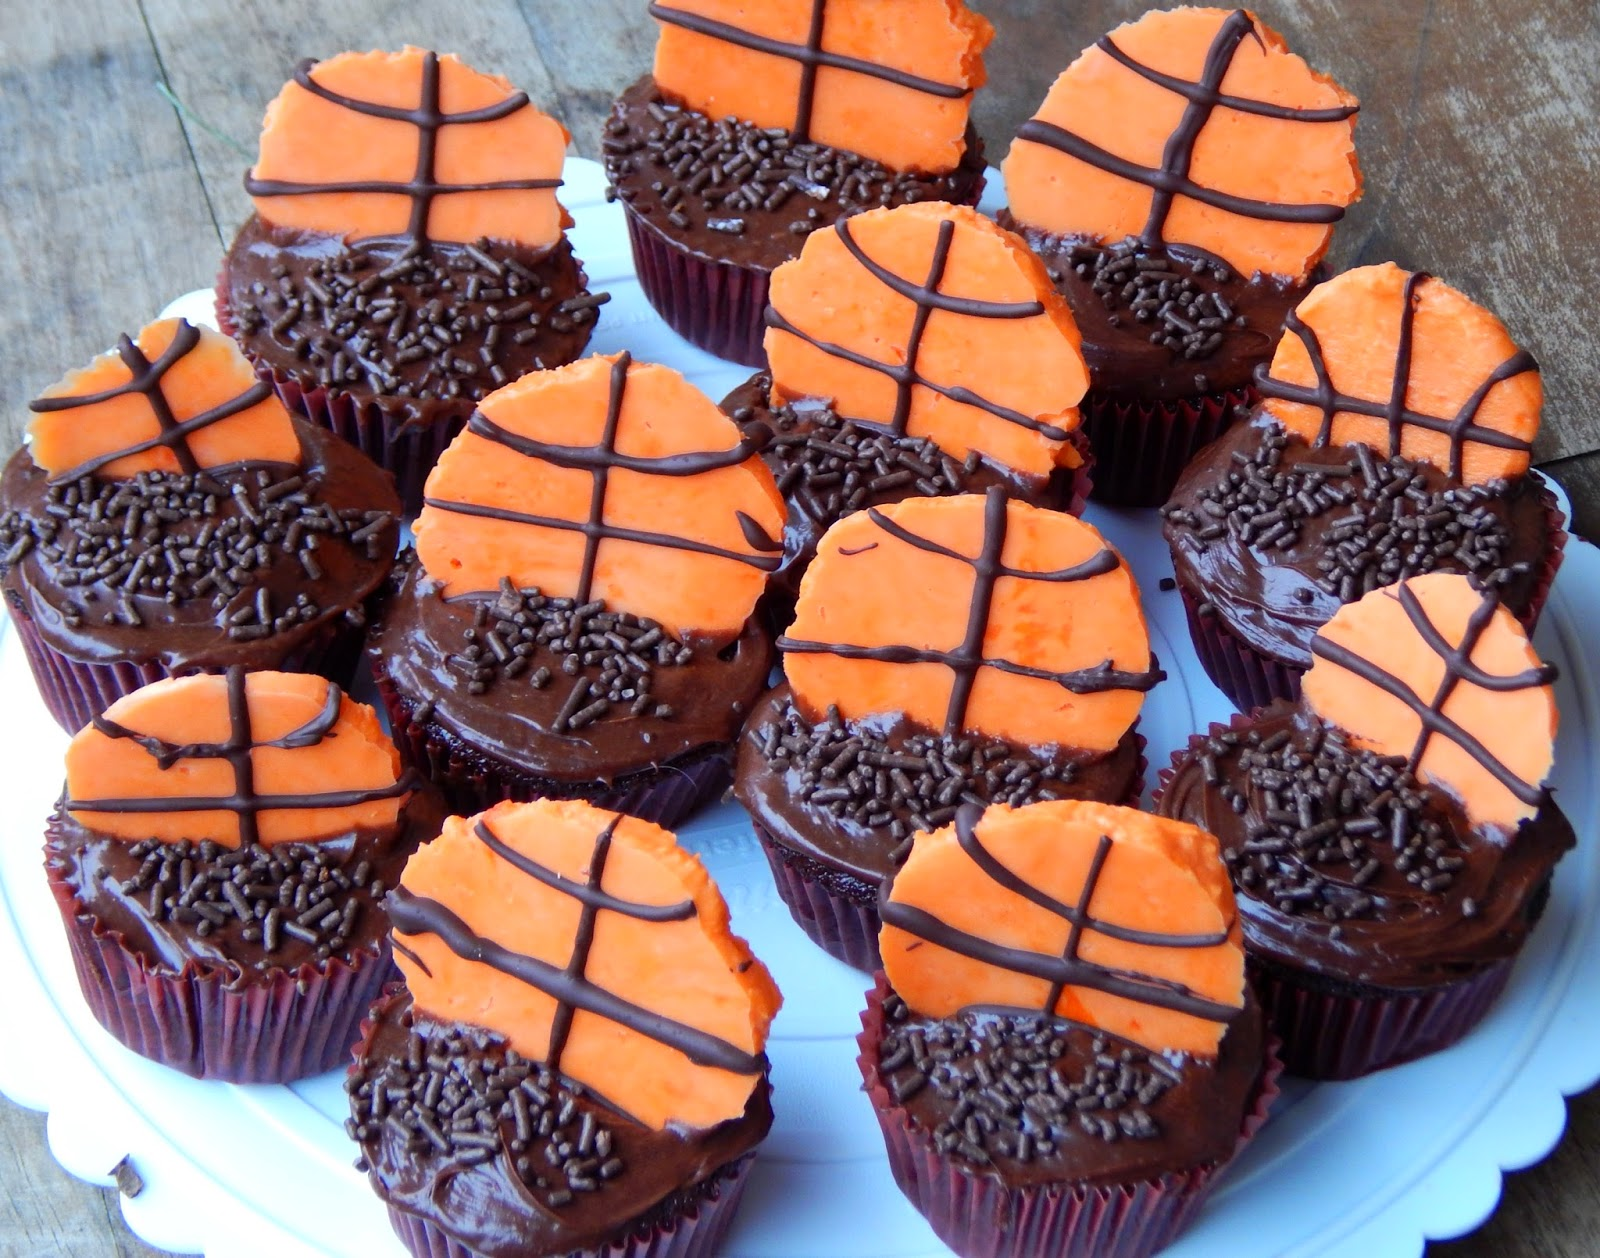 Photos and ideas for a NCAA® March Madness Celebration + Recipe for Chocolate Cherry Cupcakes #FinalFourPack #ad